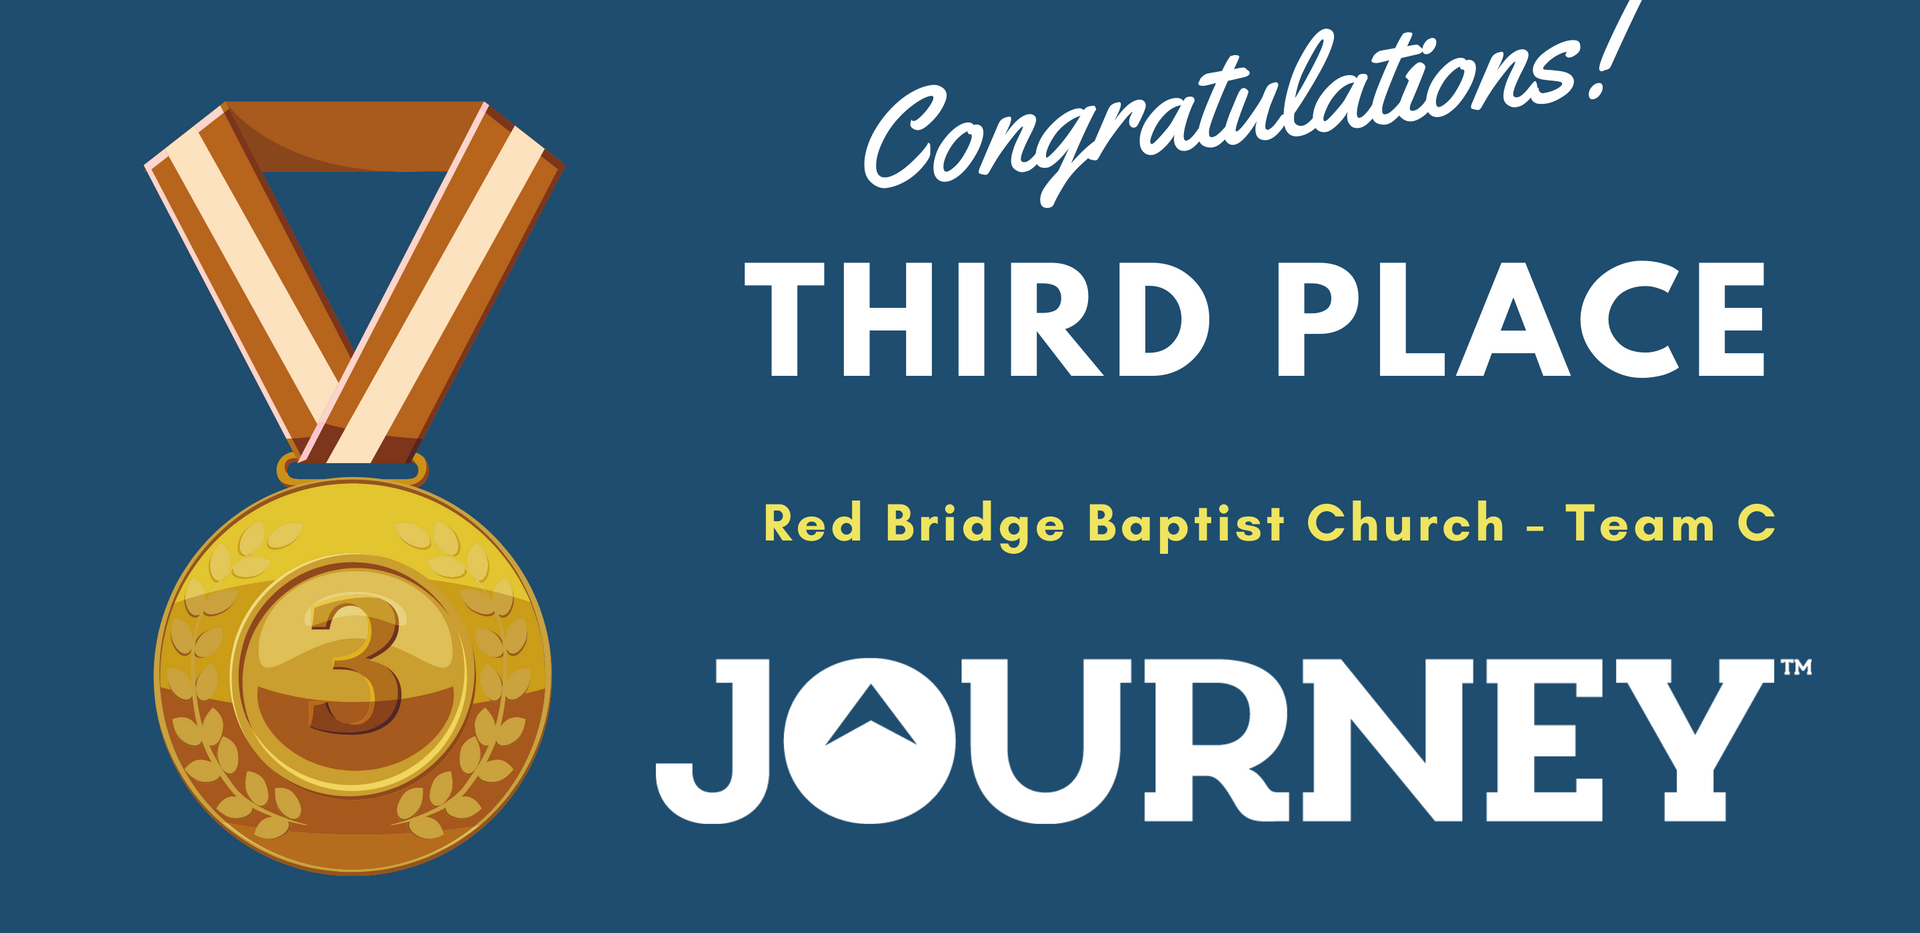 Journey - 3rd place